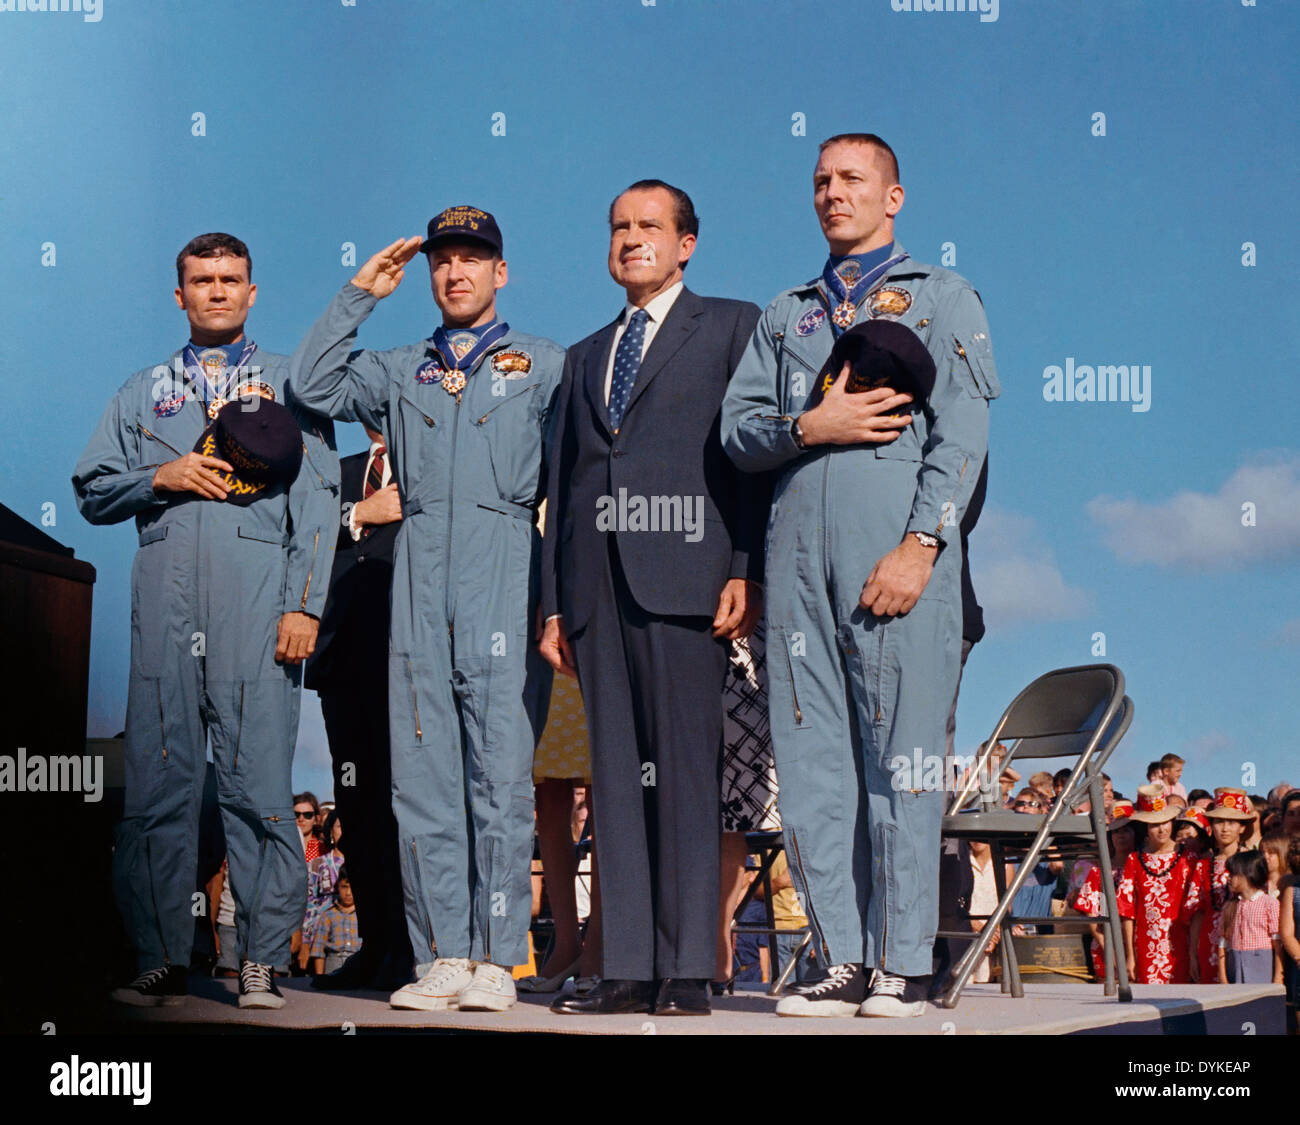 US President Richard M. Nixon and the Apollo 13 astronauts stand at attention before being presented with the Presidential Medal of Freedom during a post-mission ceremony at Hickam Air Force Base April 18, 1970 in Honolulu, Hawaii. L to R: Fred W. Haise Jr., James A. Lovell Jr. and John L. Swigert Jr. The Apollo 13 crew splashed down April 17, 1970, about a day and a half prior to the award presentation. - Stock Image